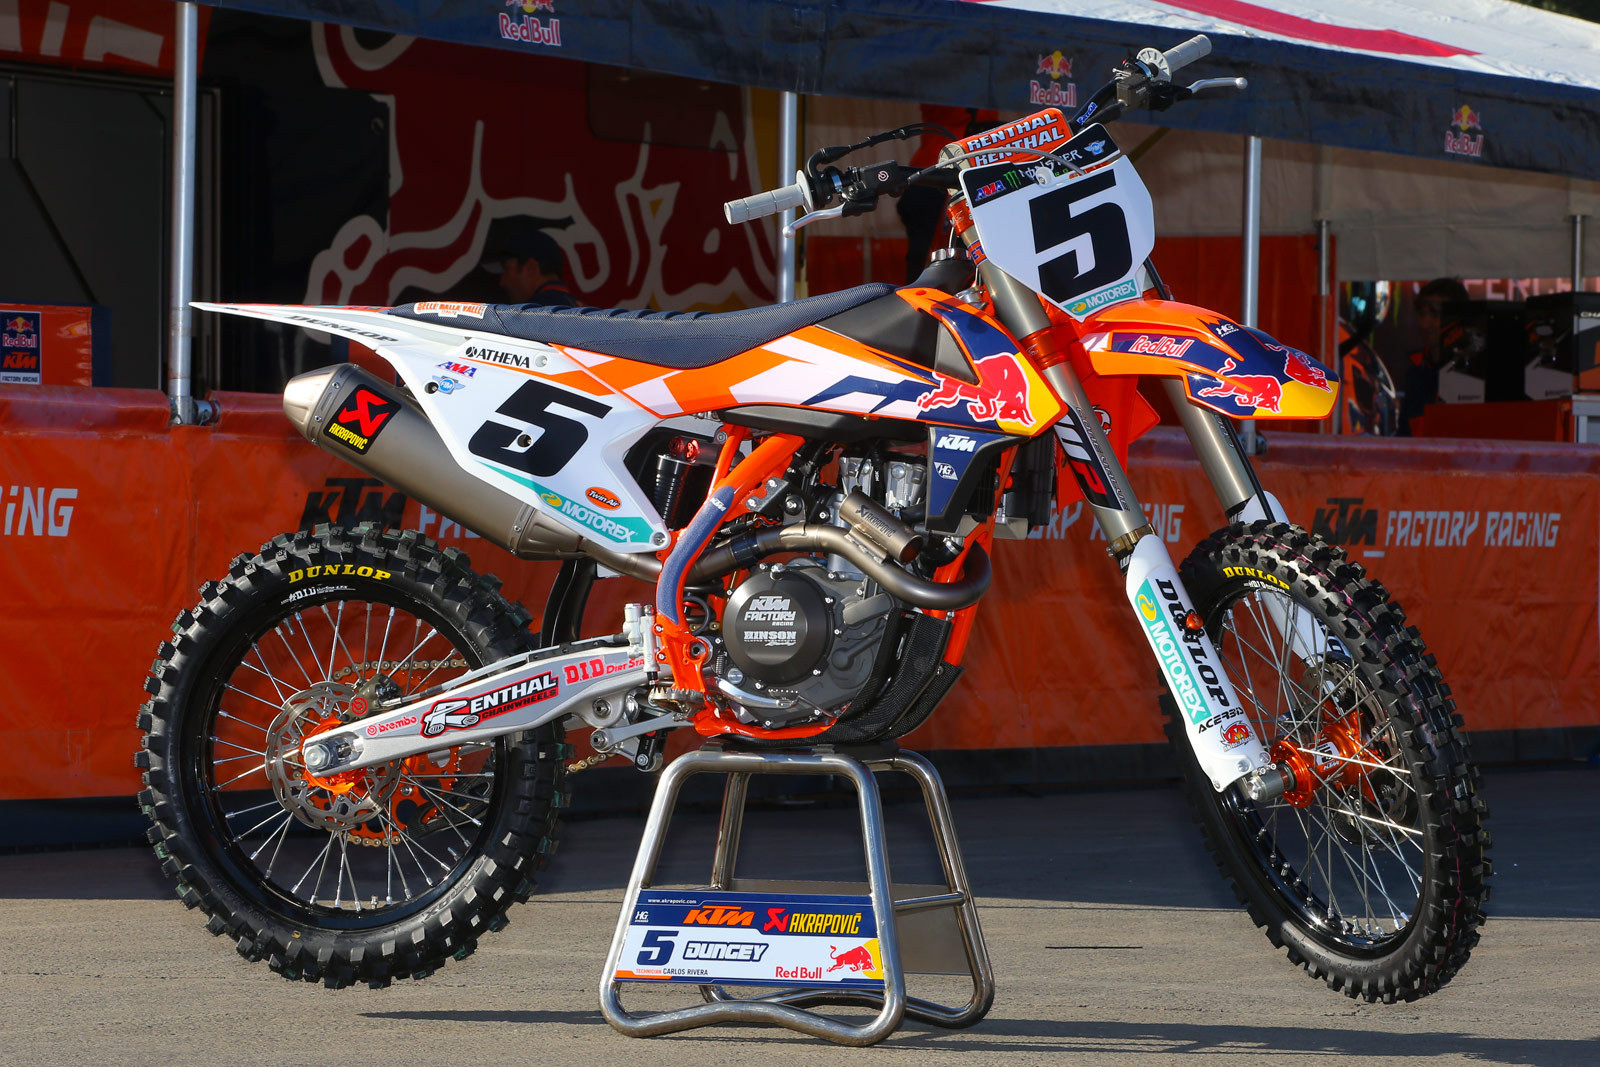 ... First Look: 2015 Bikes of Supercross - Motocross Pictures - Vital MX